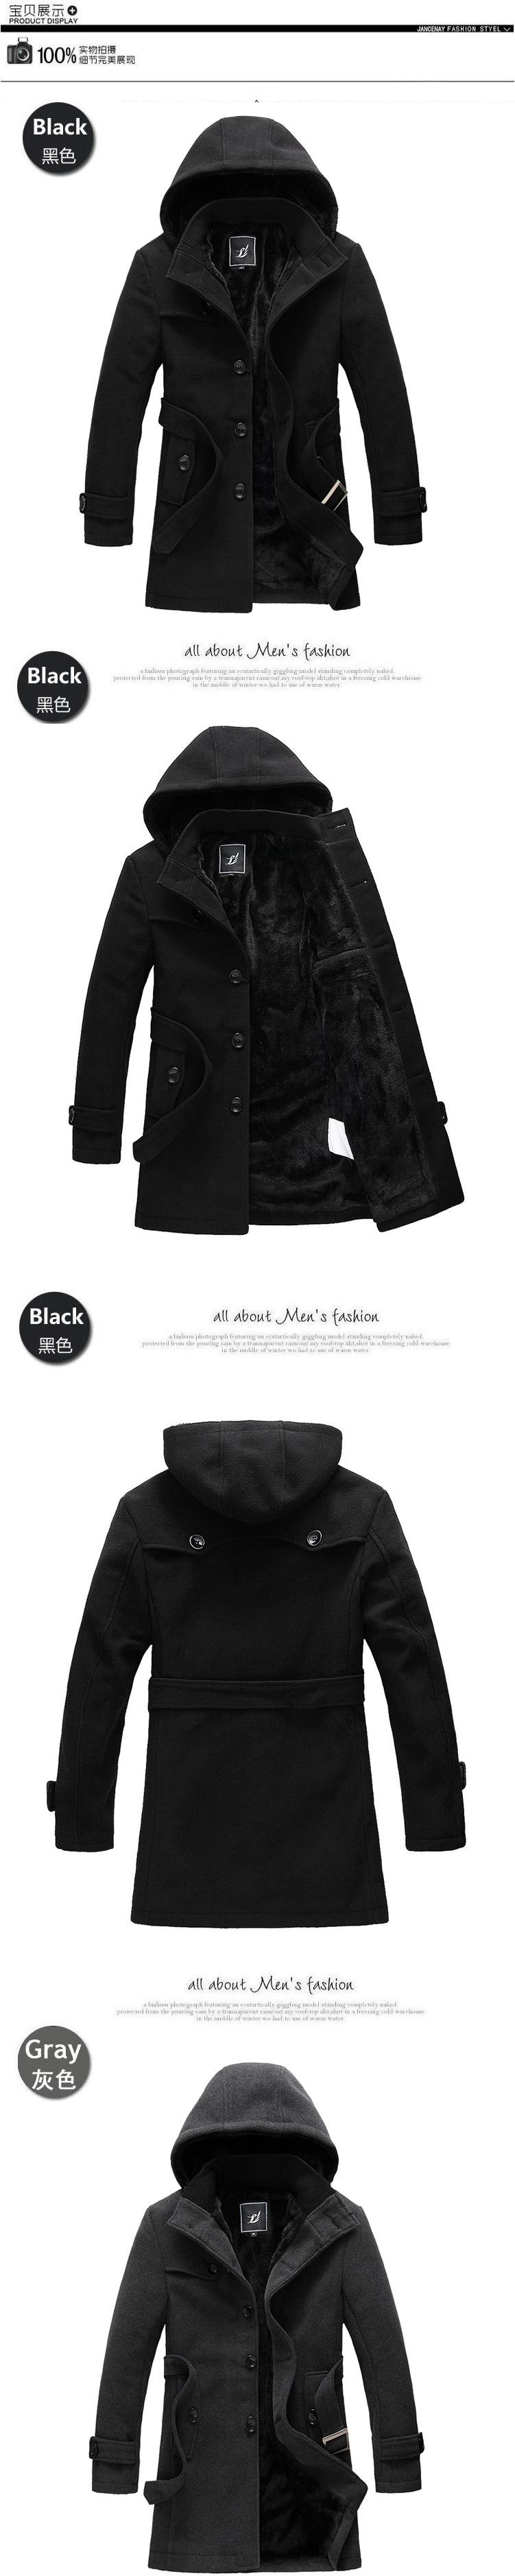 Mid-Length-Hooded-Trench-Coat-05